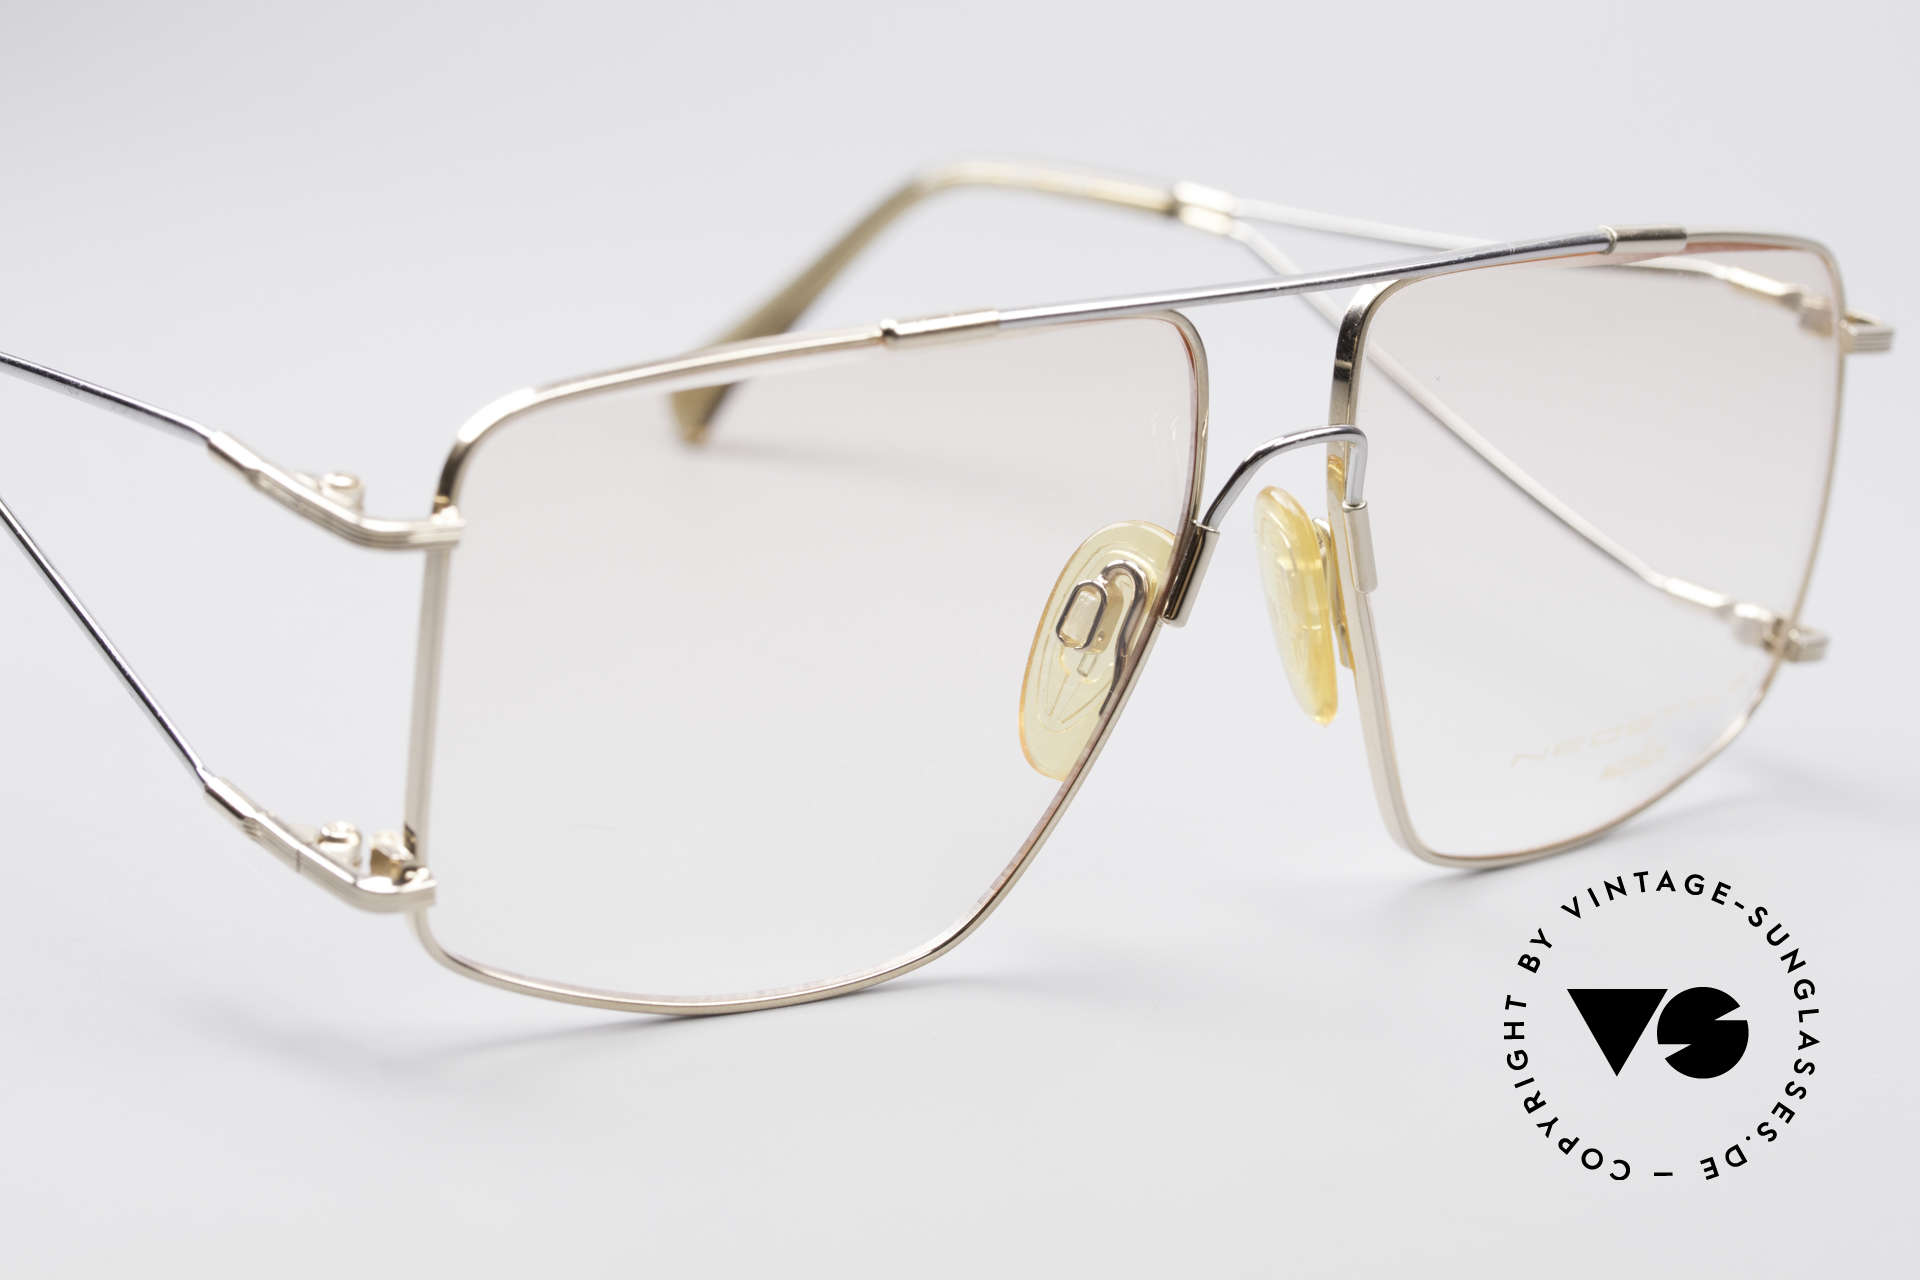 Neostyle Jet 40 Titanflex Vintage Glasses, the so called 'MEMORY EFFECT' is simply ingenious, Made for Men